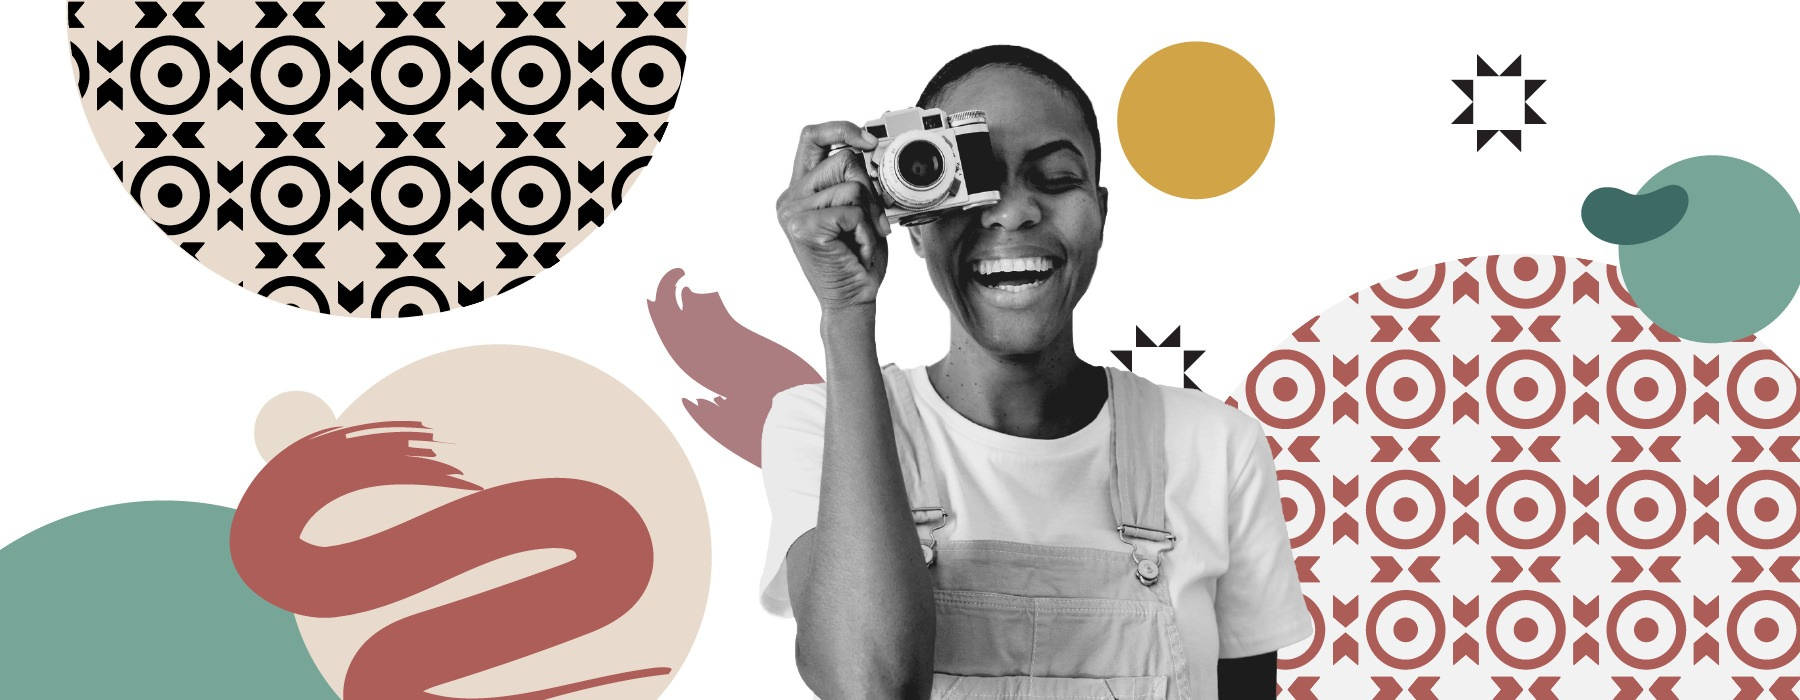 graphic of smiling young woman holding up a camera surrounded by shapes and designs